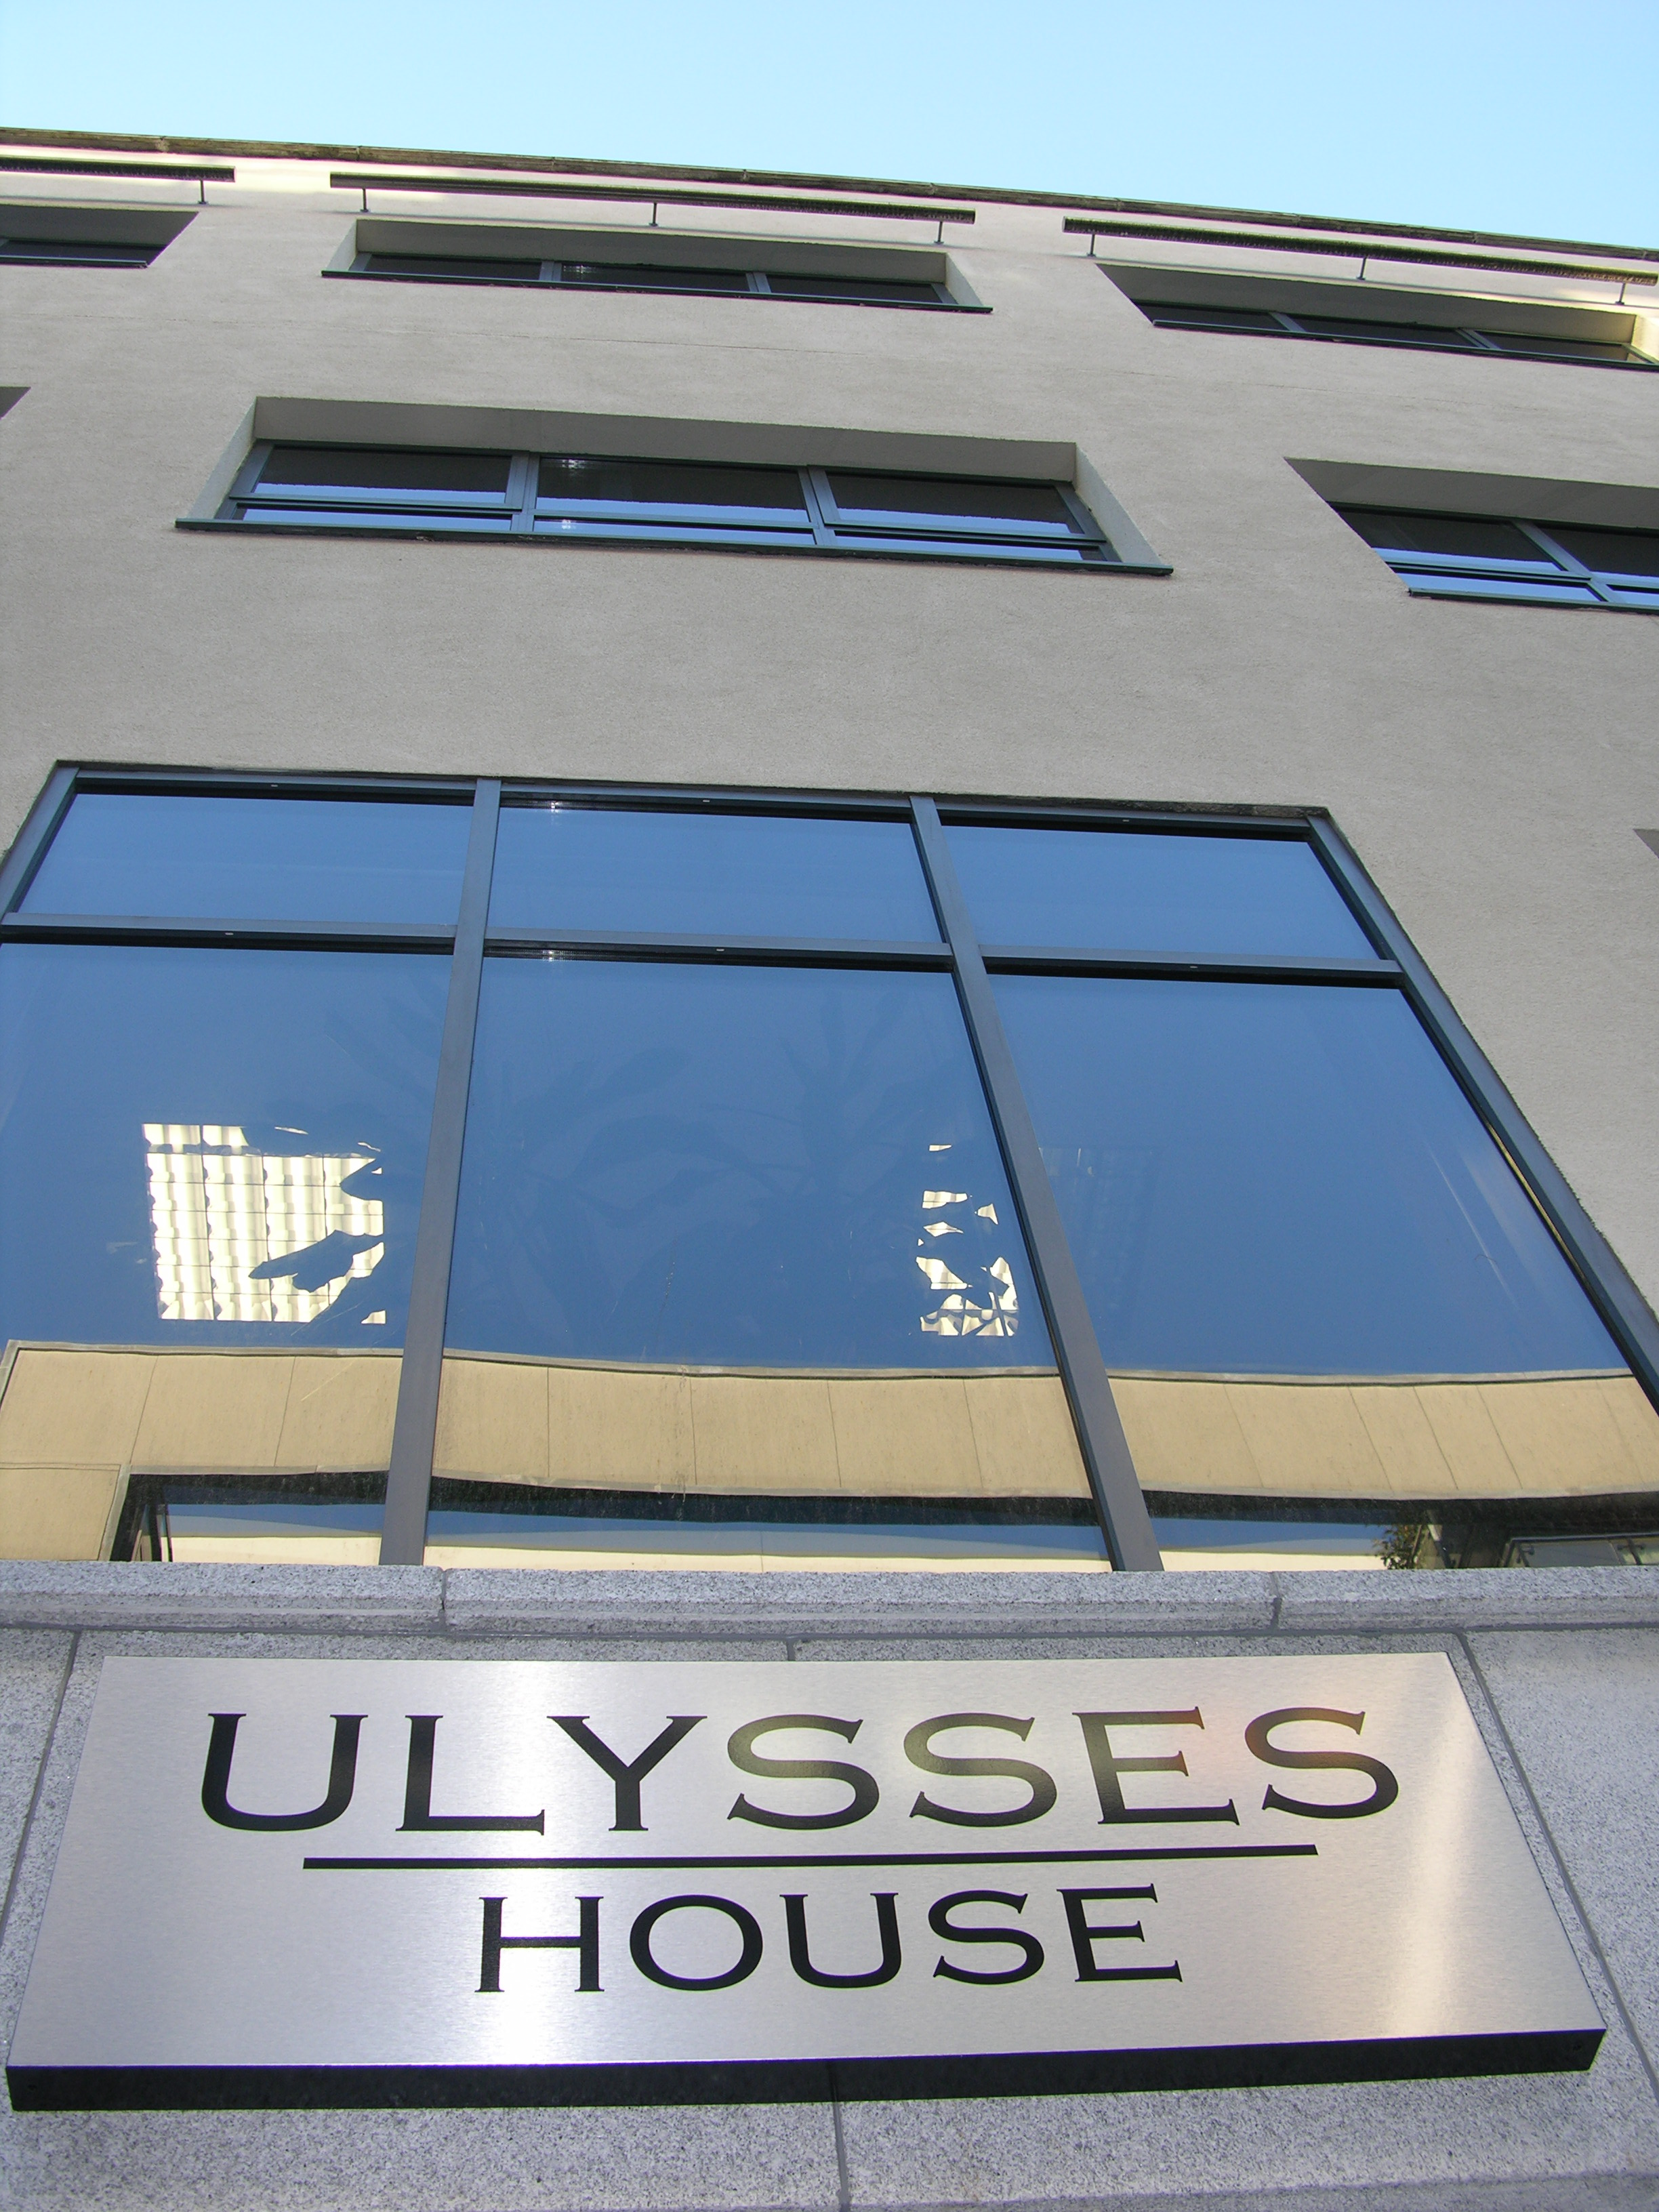 New offices at Ulysses House - Moved into in 2005